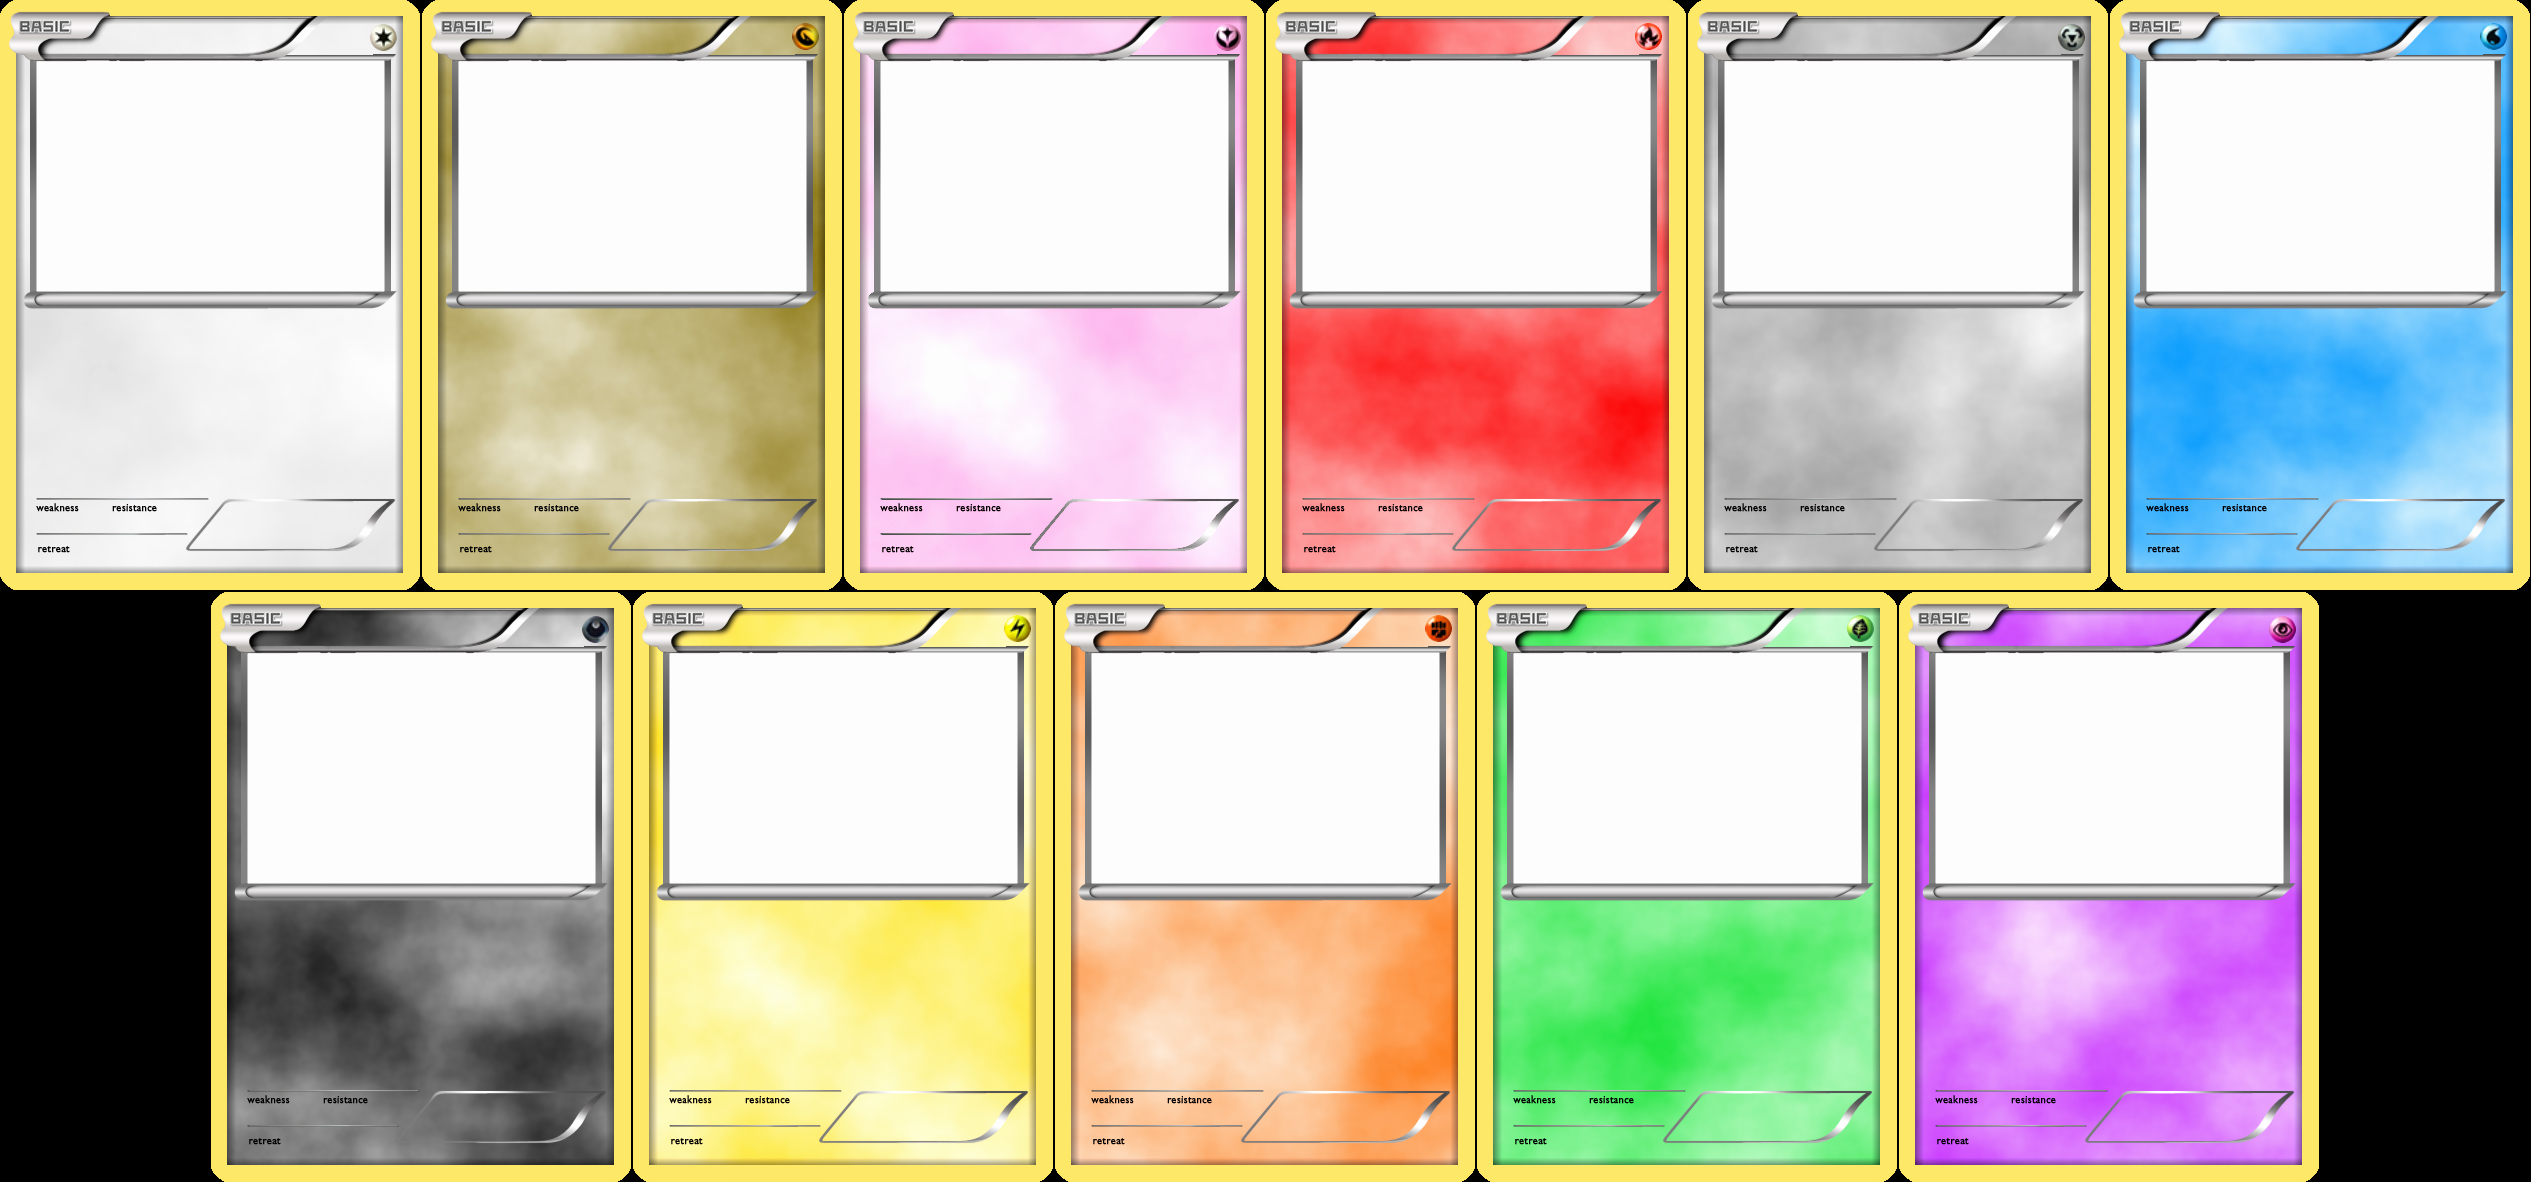 Blank Trading Card Template Luxury Pokemon Blank Card Templates by Levelinfinitum On Deviantart